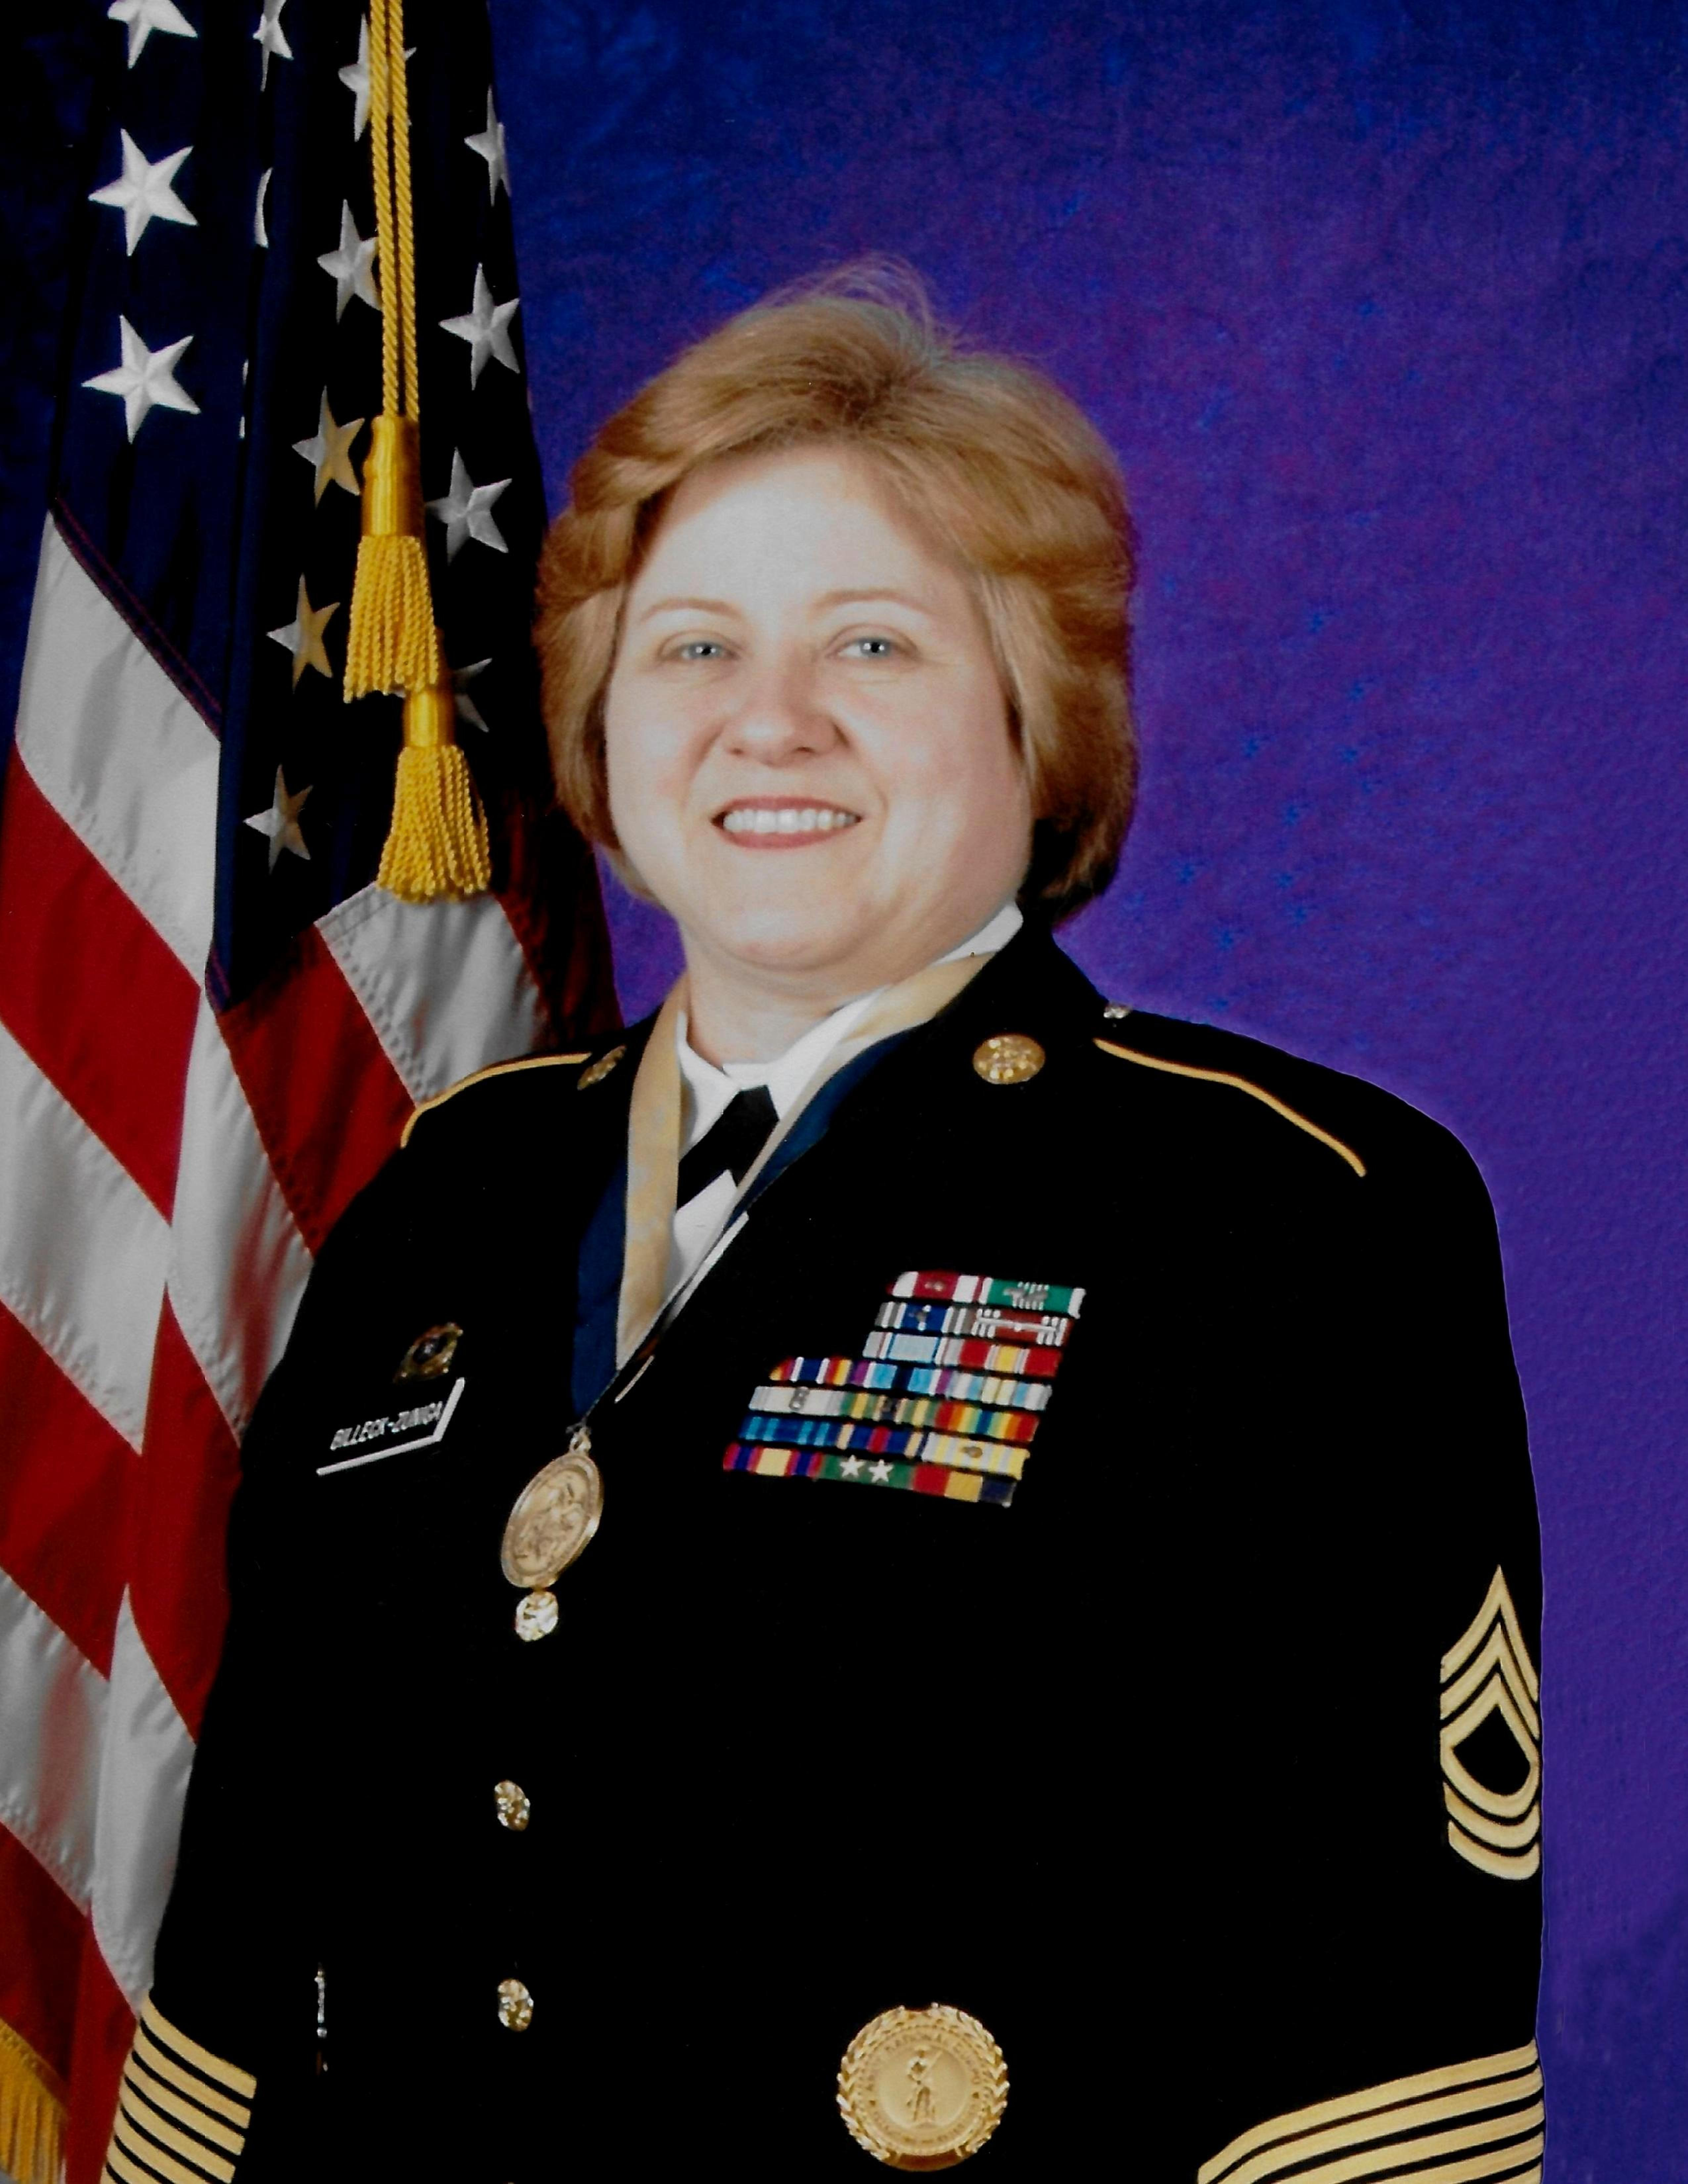 Retired Master Sgt. Theresa M. Billeck-Zuniga